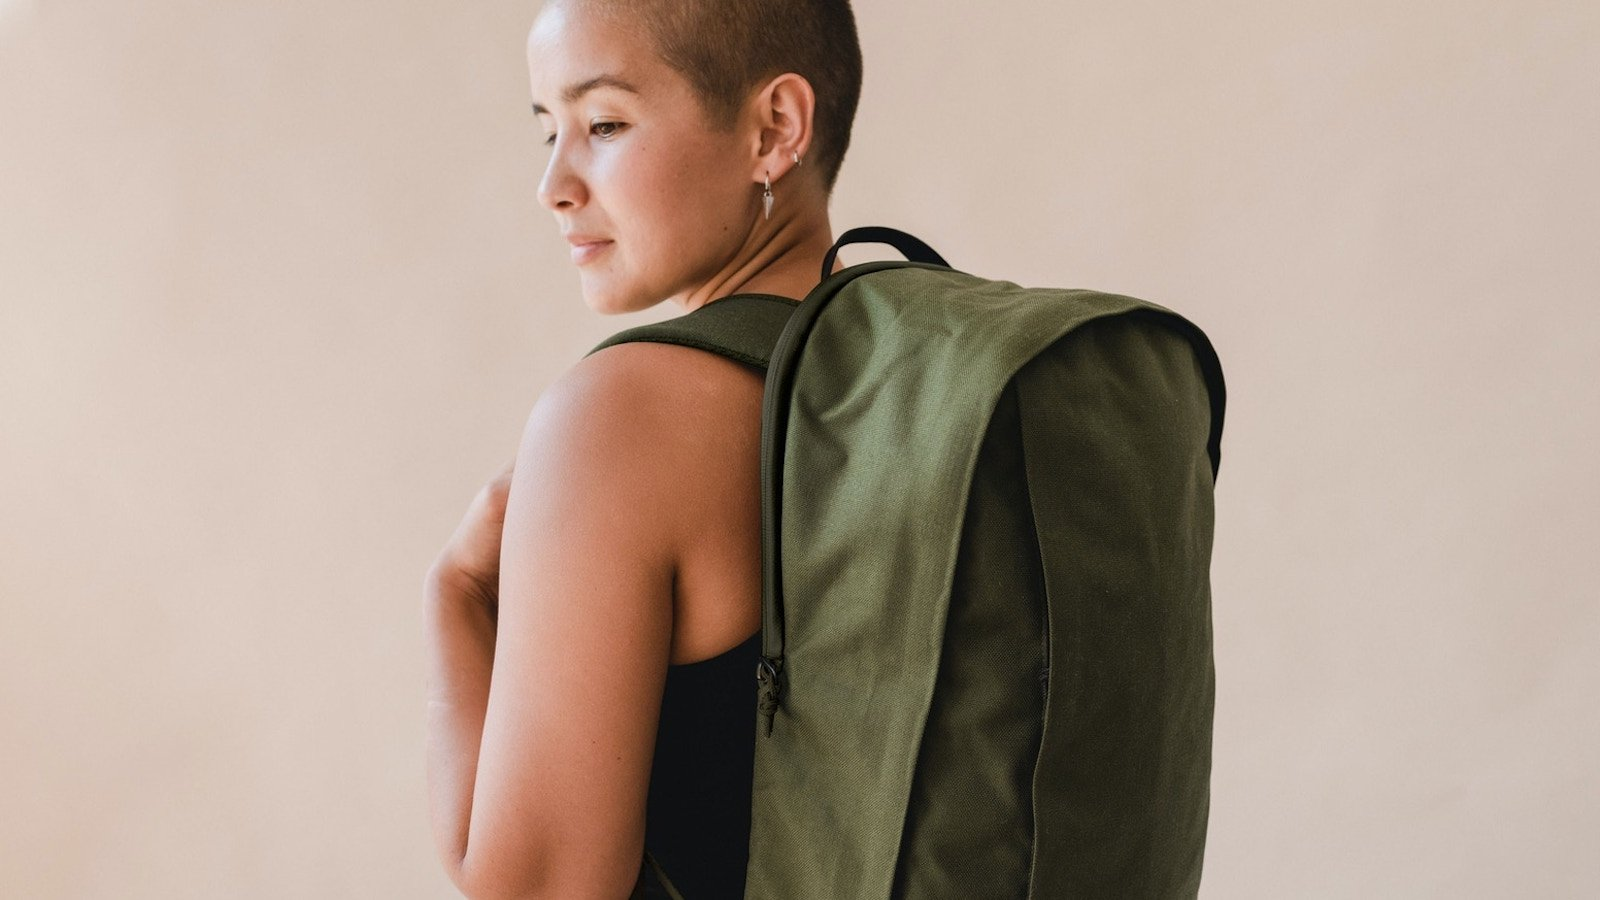 Moment Travelwear versatile bags are made for everyday carry